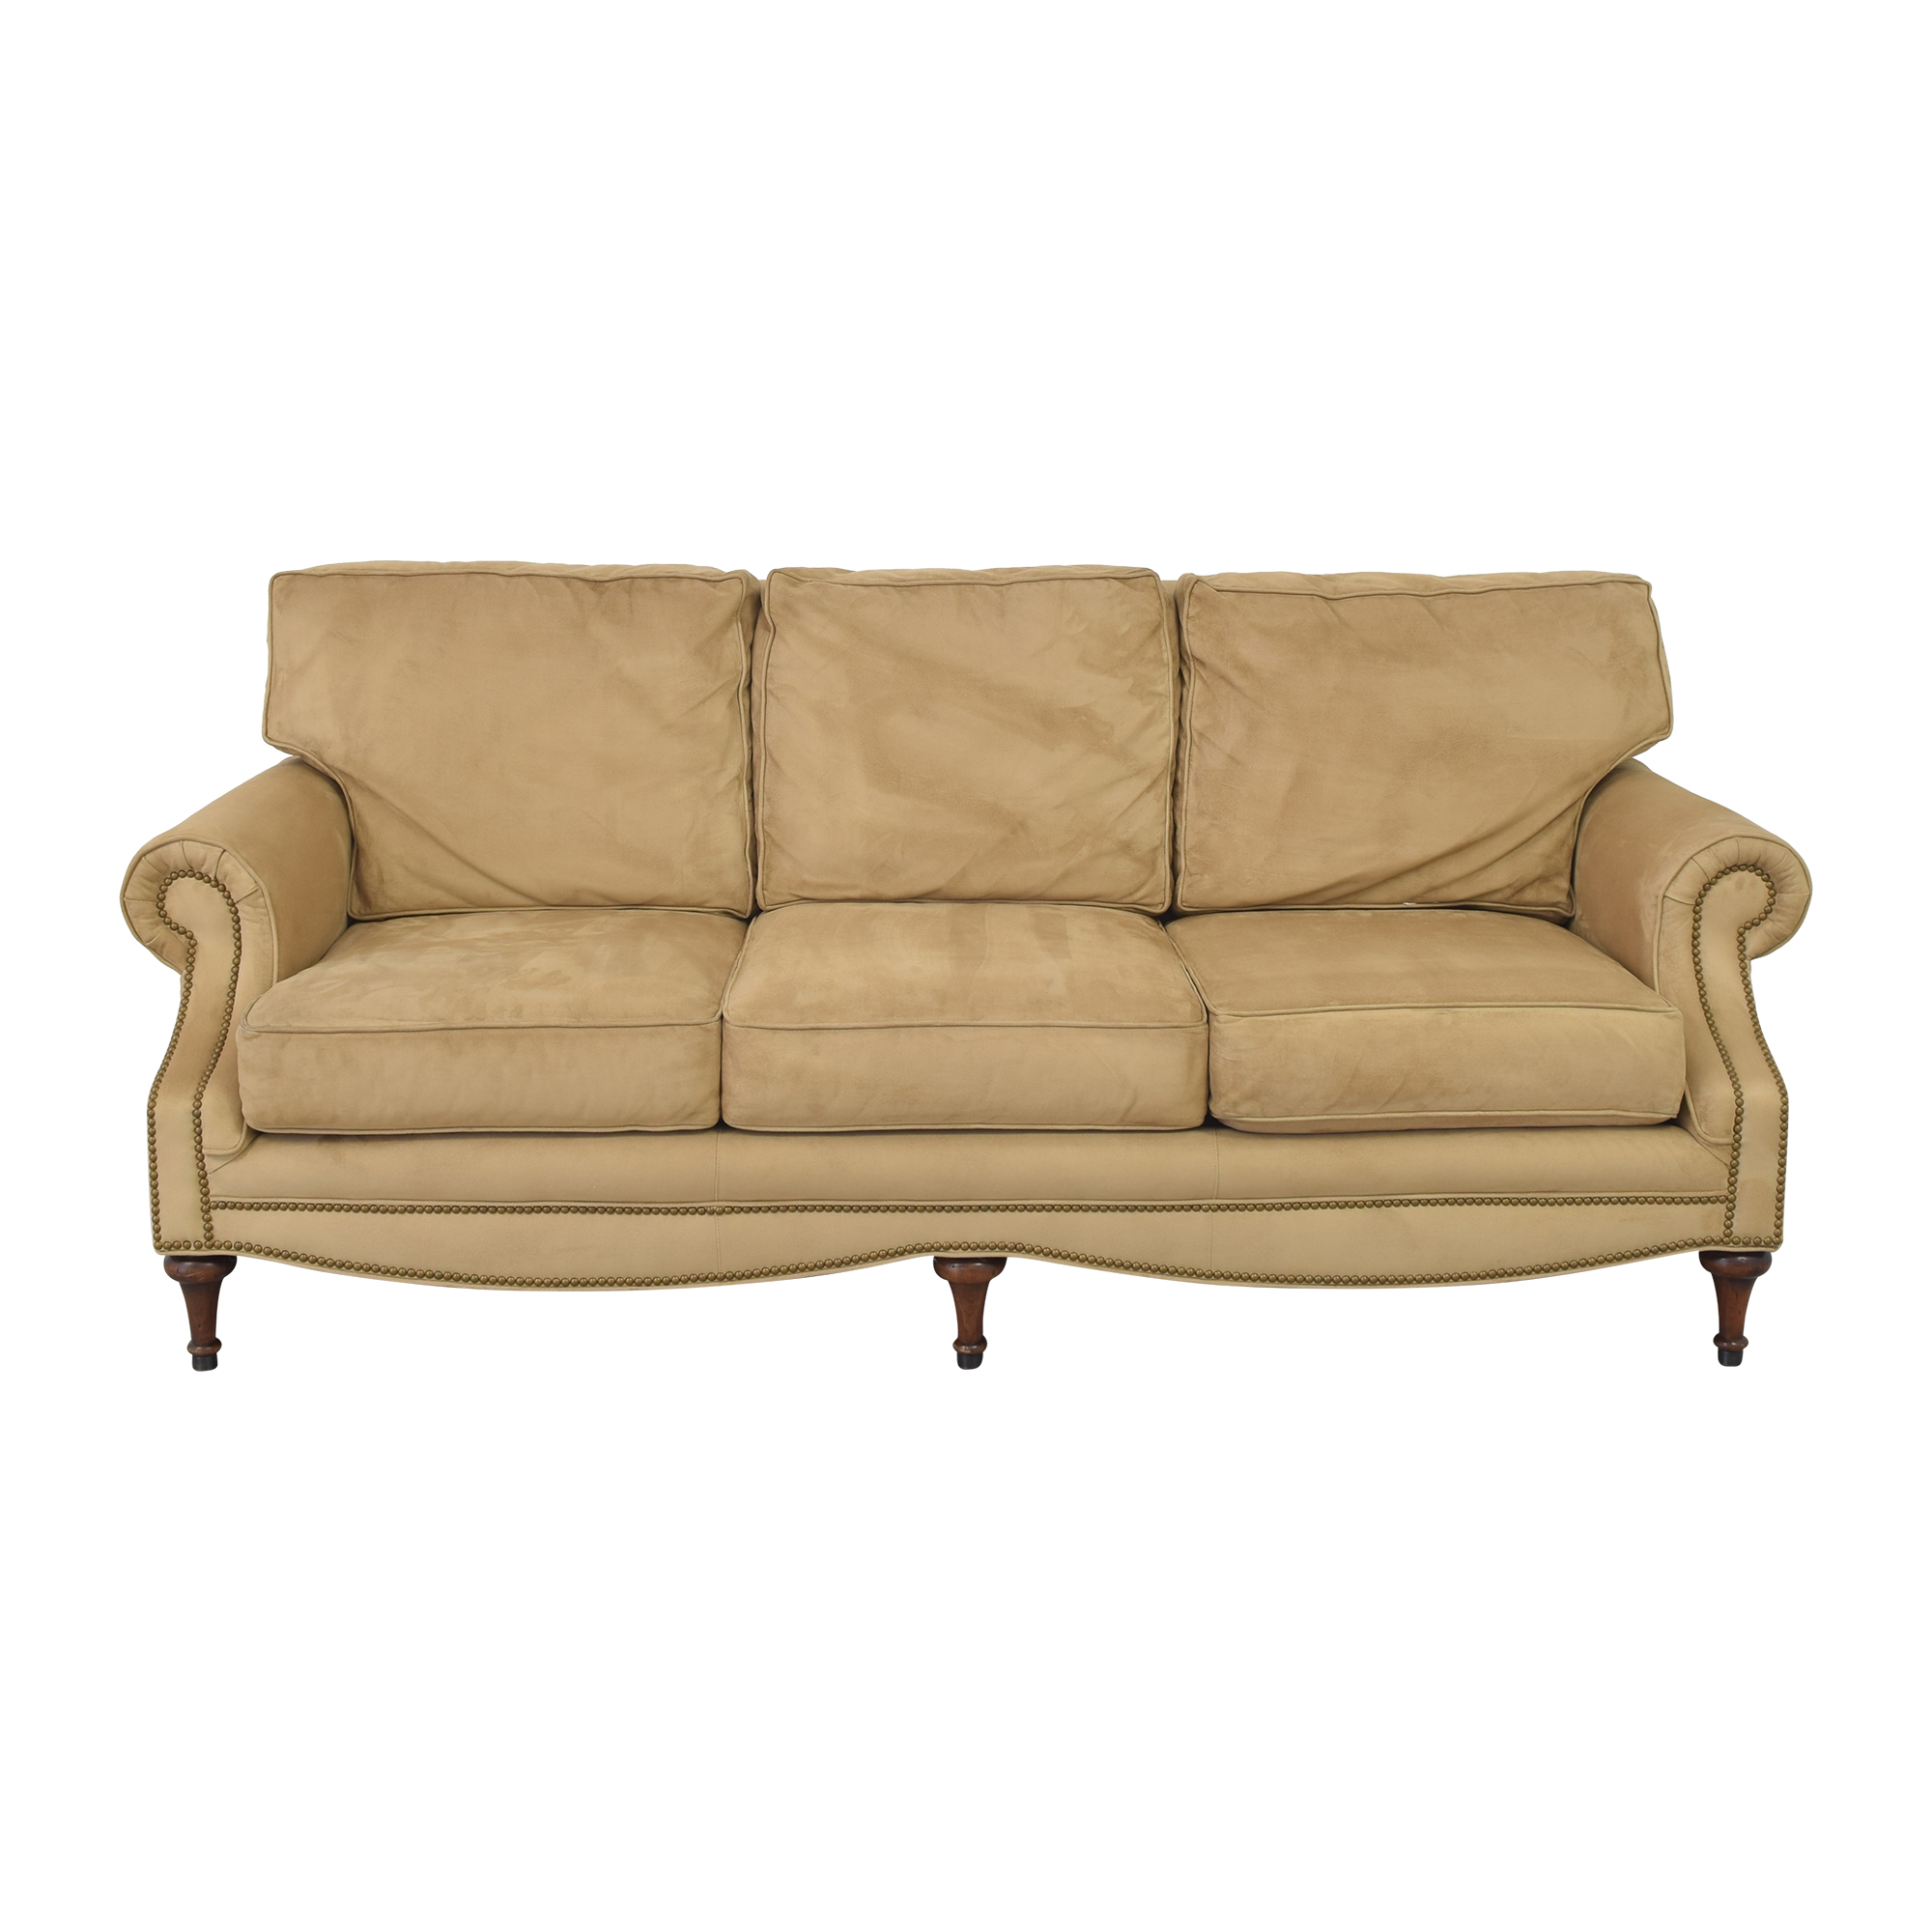 Harden Harden Roll Arm Sofa price